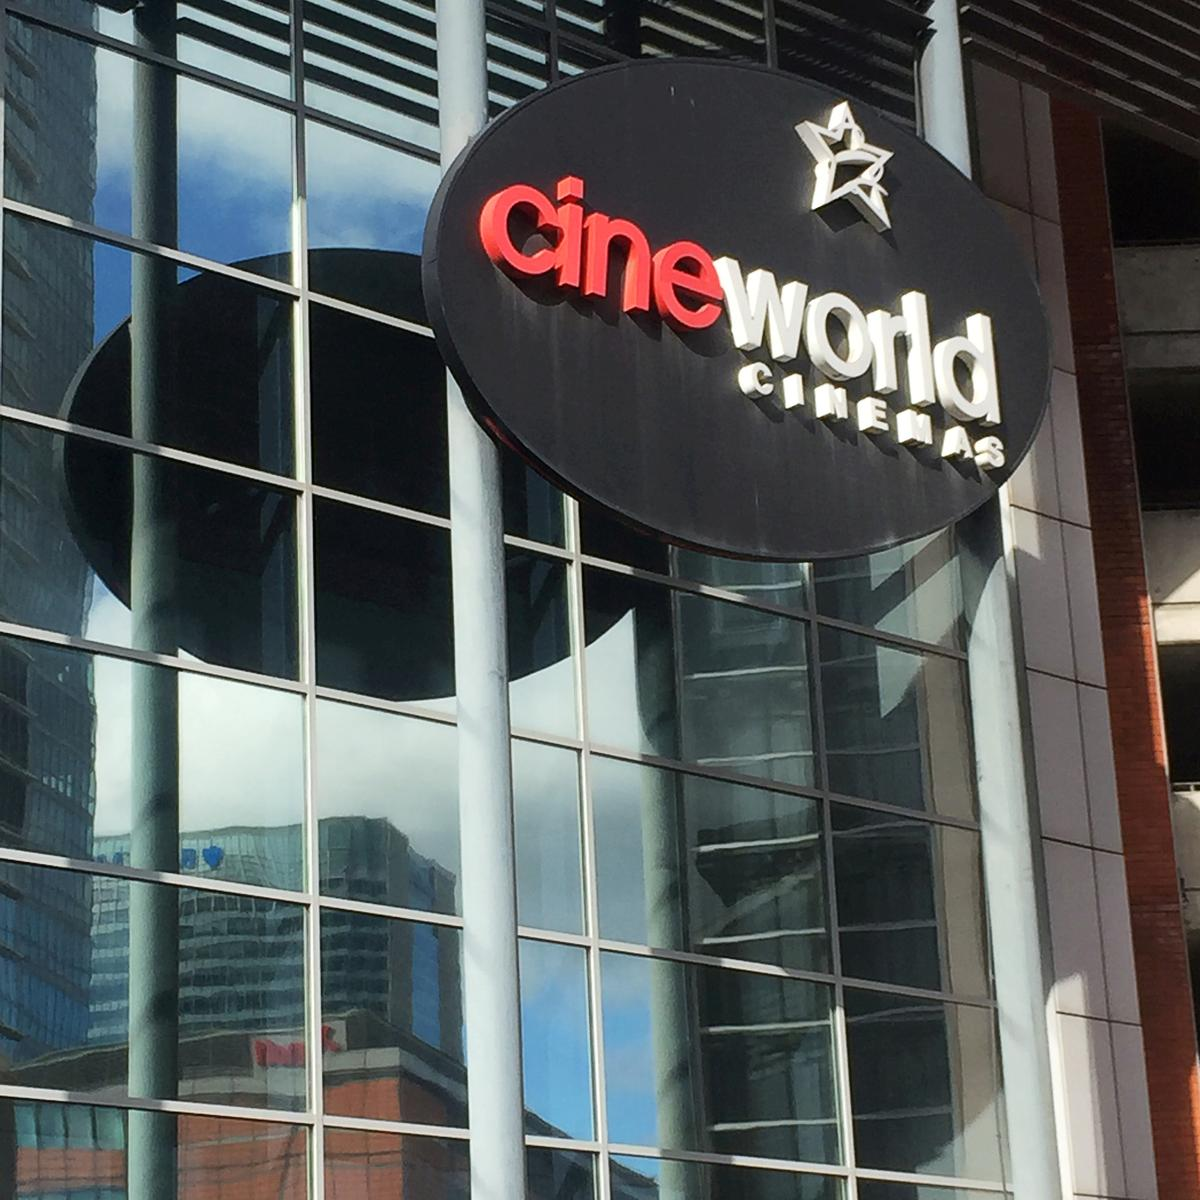 Cineworld closes all cinemas in 10 countries due to coronavirus